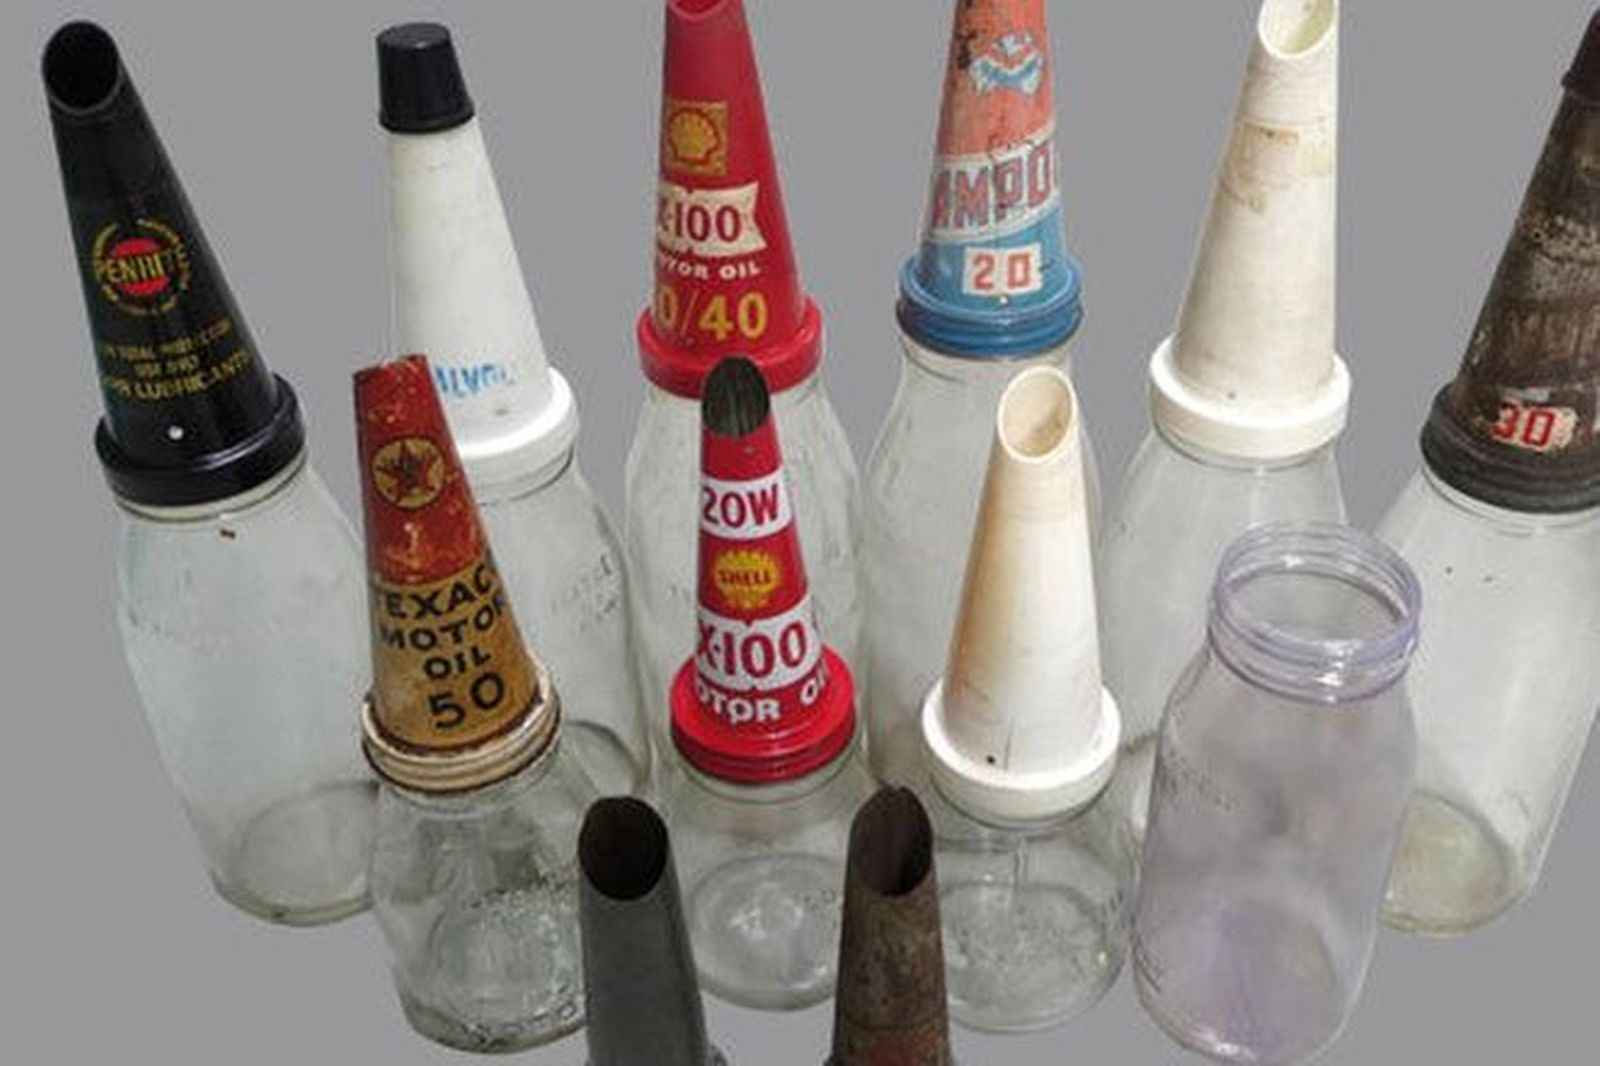 Collection of Assorted Oil Bottles and Pourers (10 bottles & 11 Pourers)